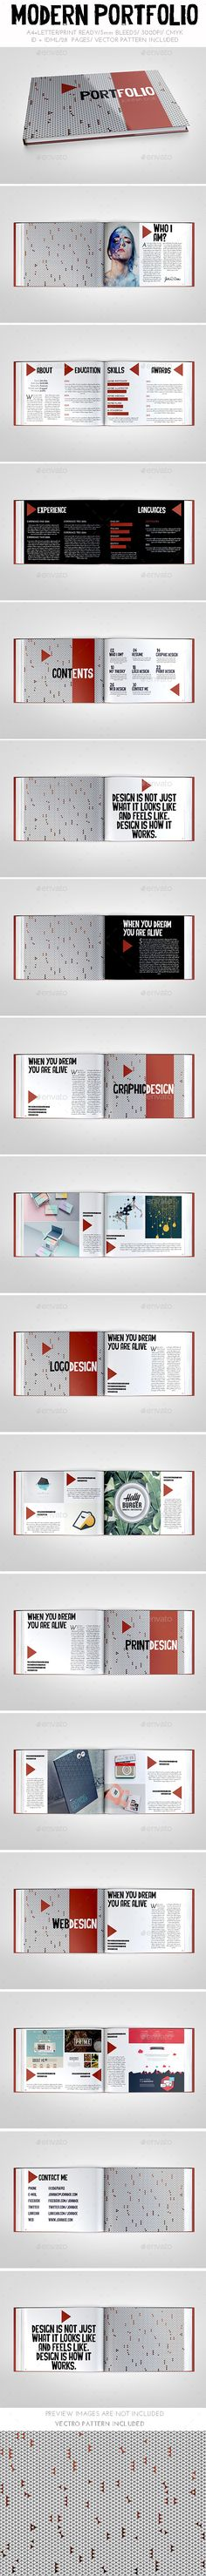 Buy Modern Portfolio Brochure by on GraphicRiver. In-design + Idml or lower Beautiful abstract printable brochure. You can use it as a brochure or your person. Portfolio Design, Portfolio Resume, Portfolio Book, Portfolio Layout, Personal Portfolio, Template Portfolio, Handout Design, Design Thinking, Photoshop